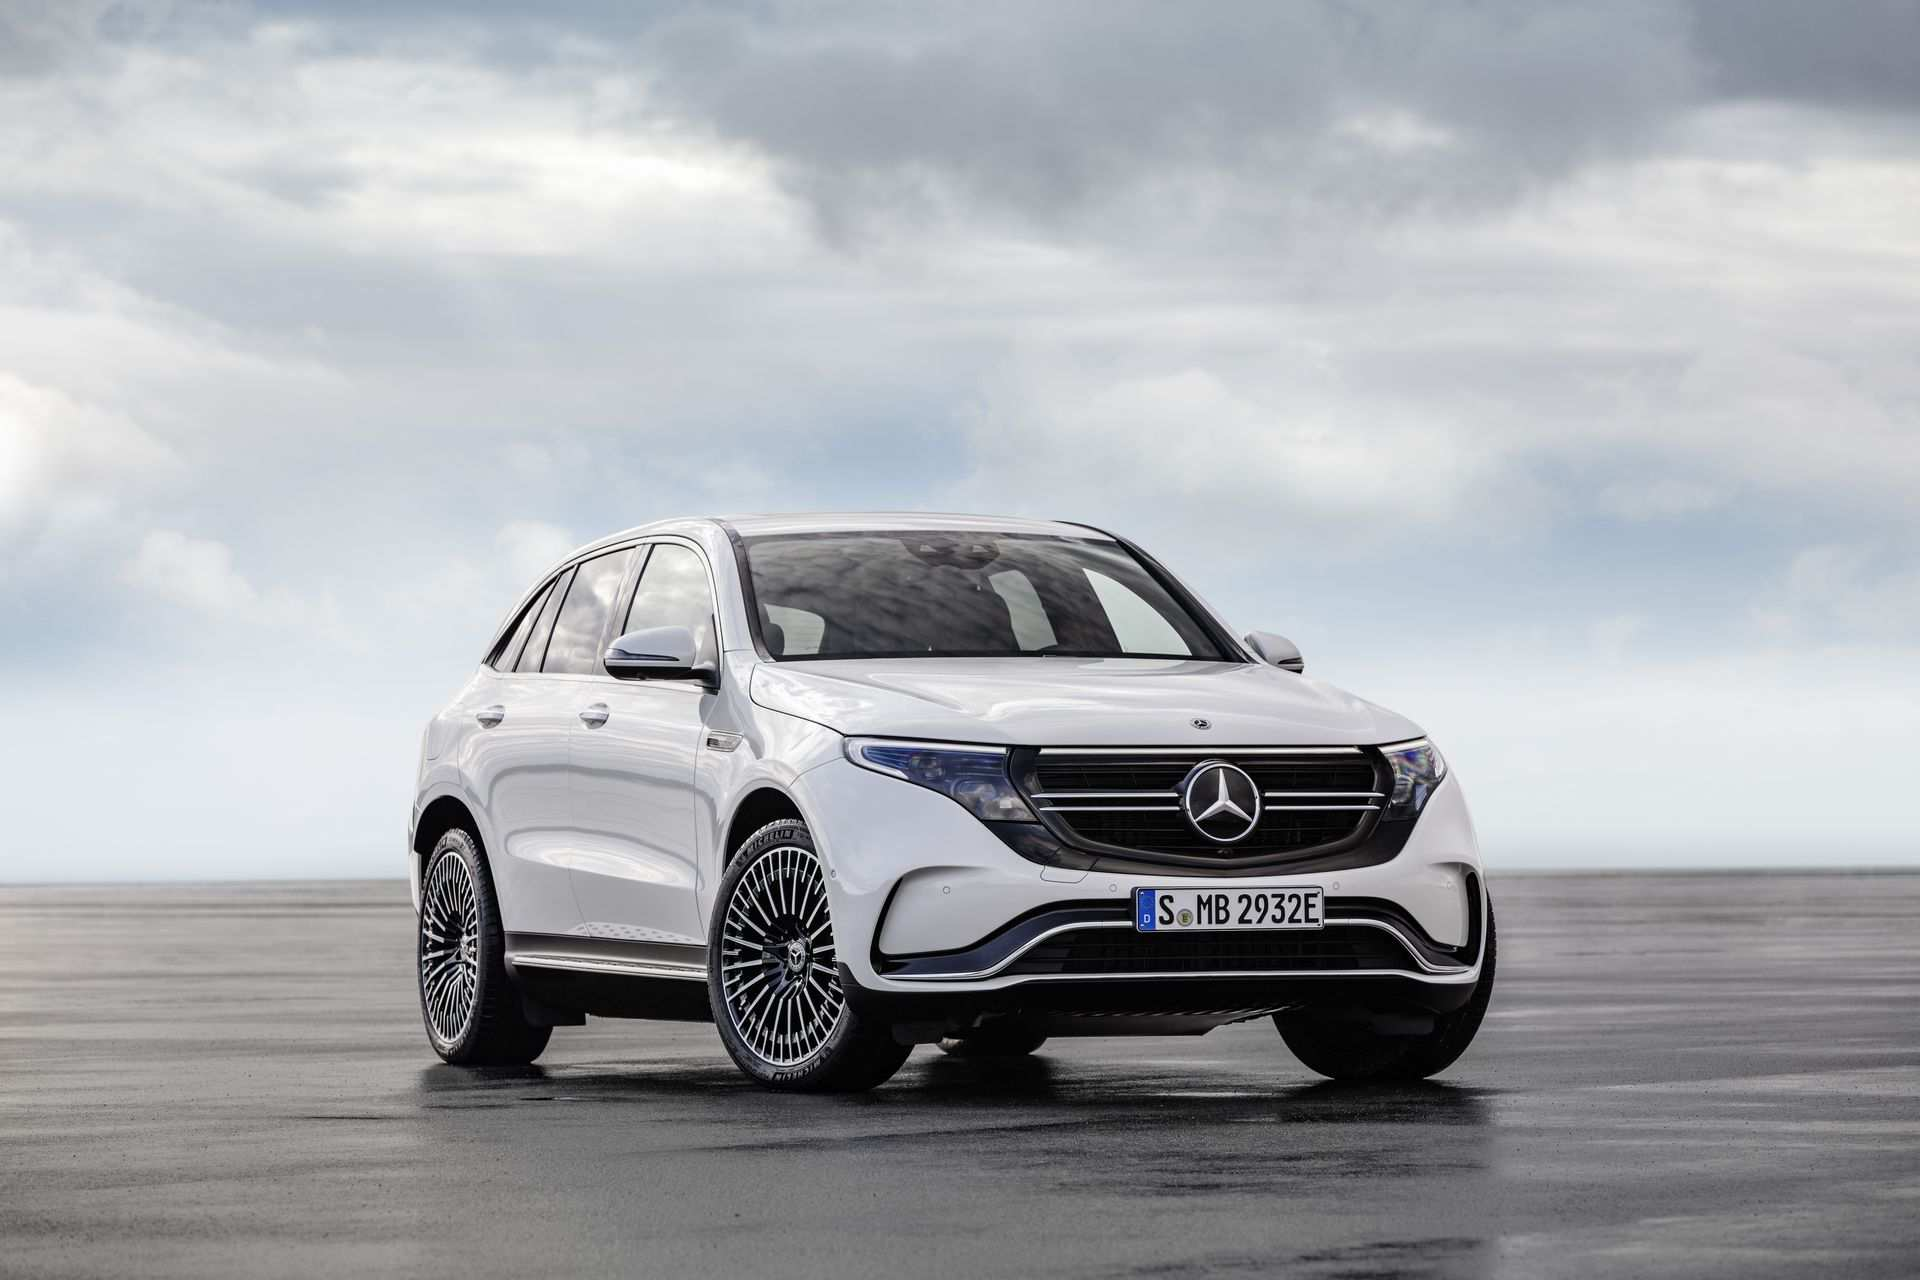 97 Gallery of Mercedes Benz Eqc 2020 Configurations with Mercedes Benz Eqc 2020